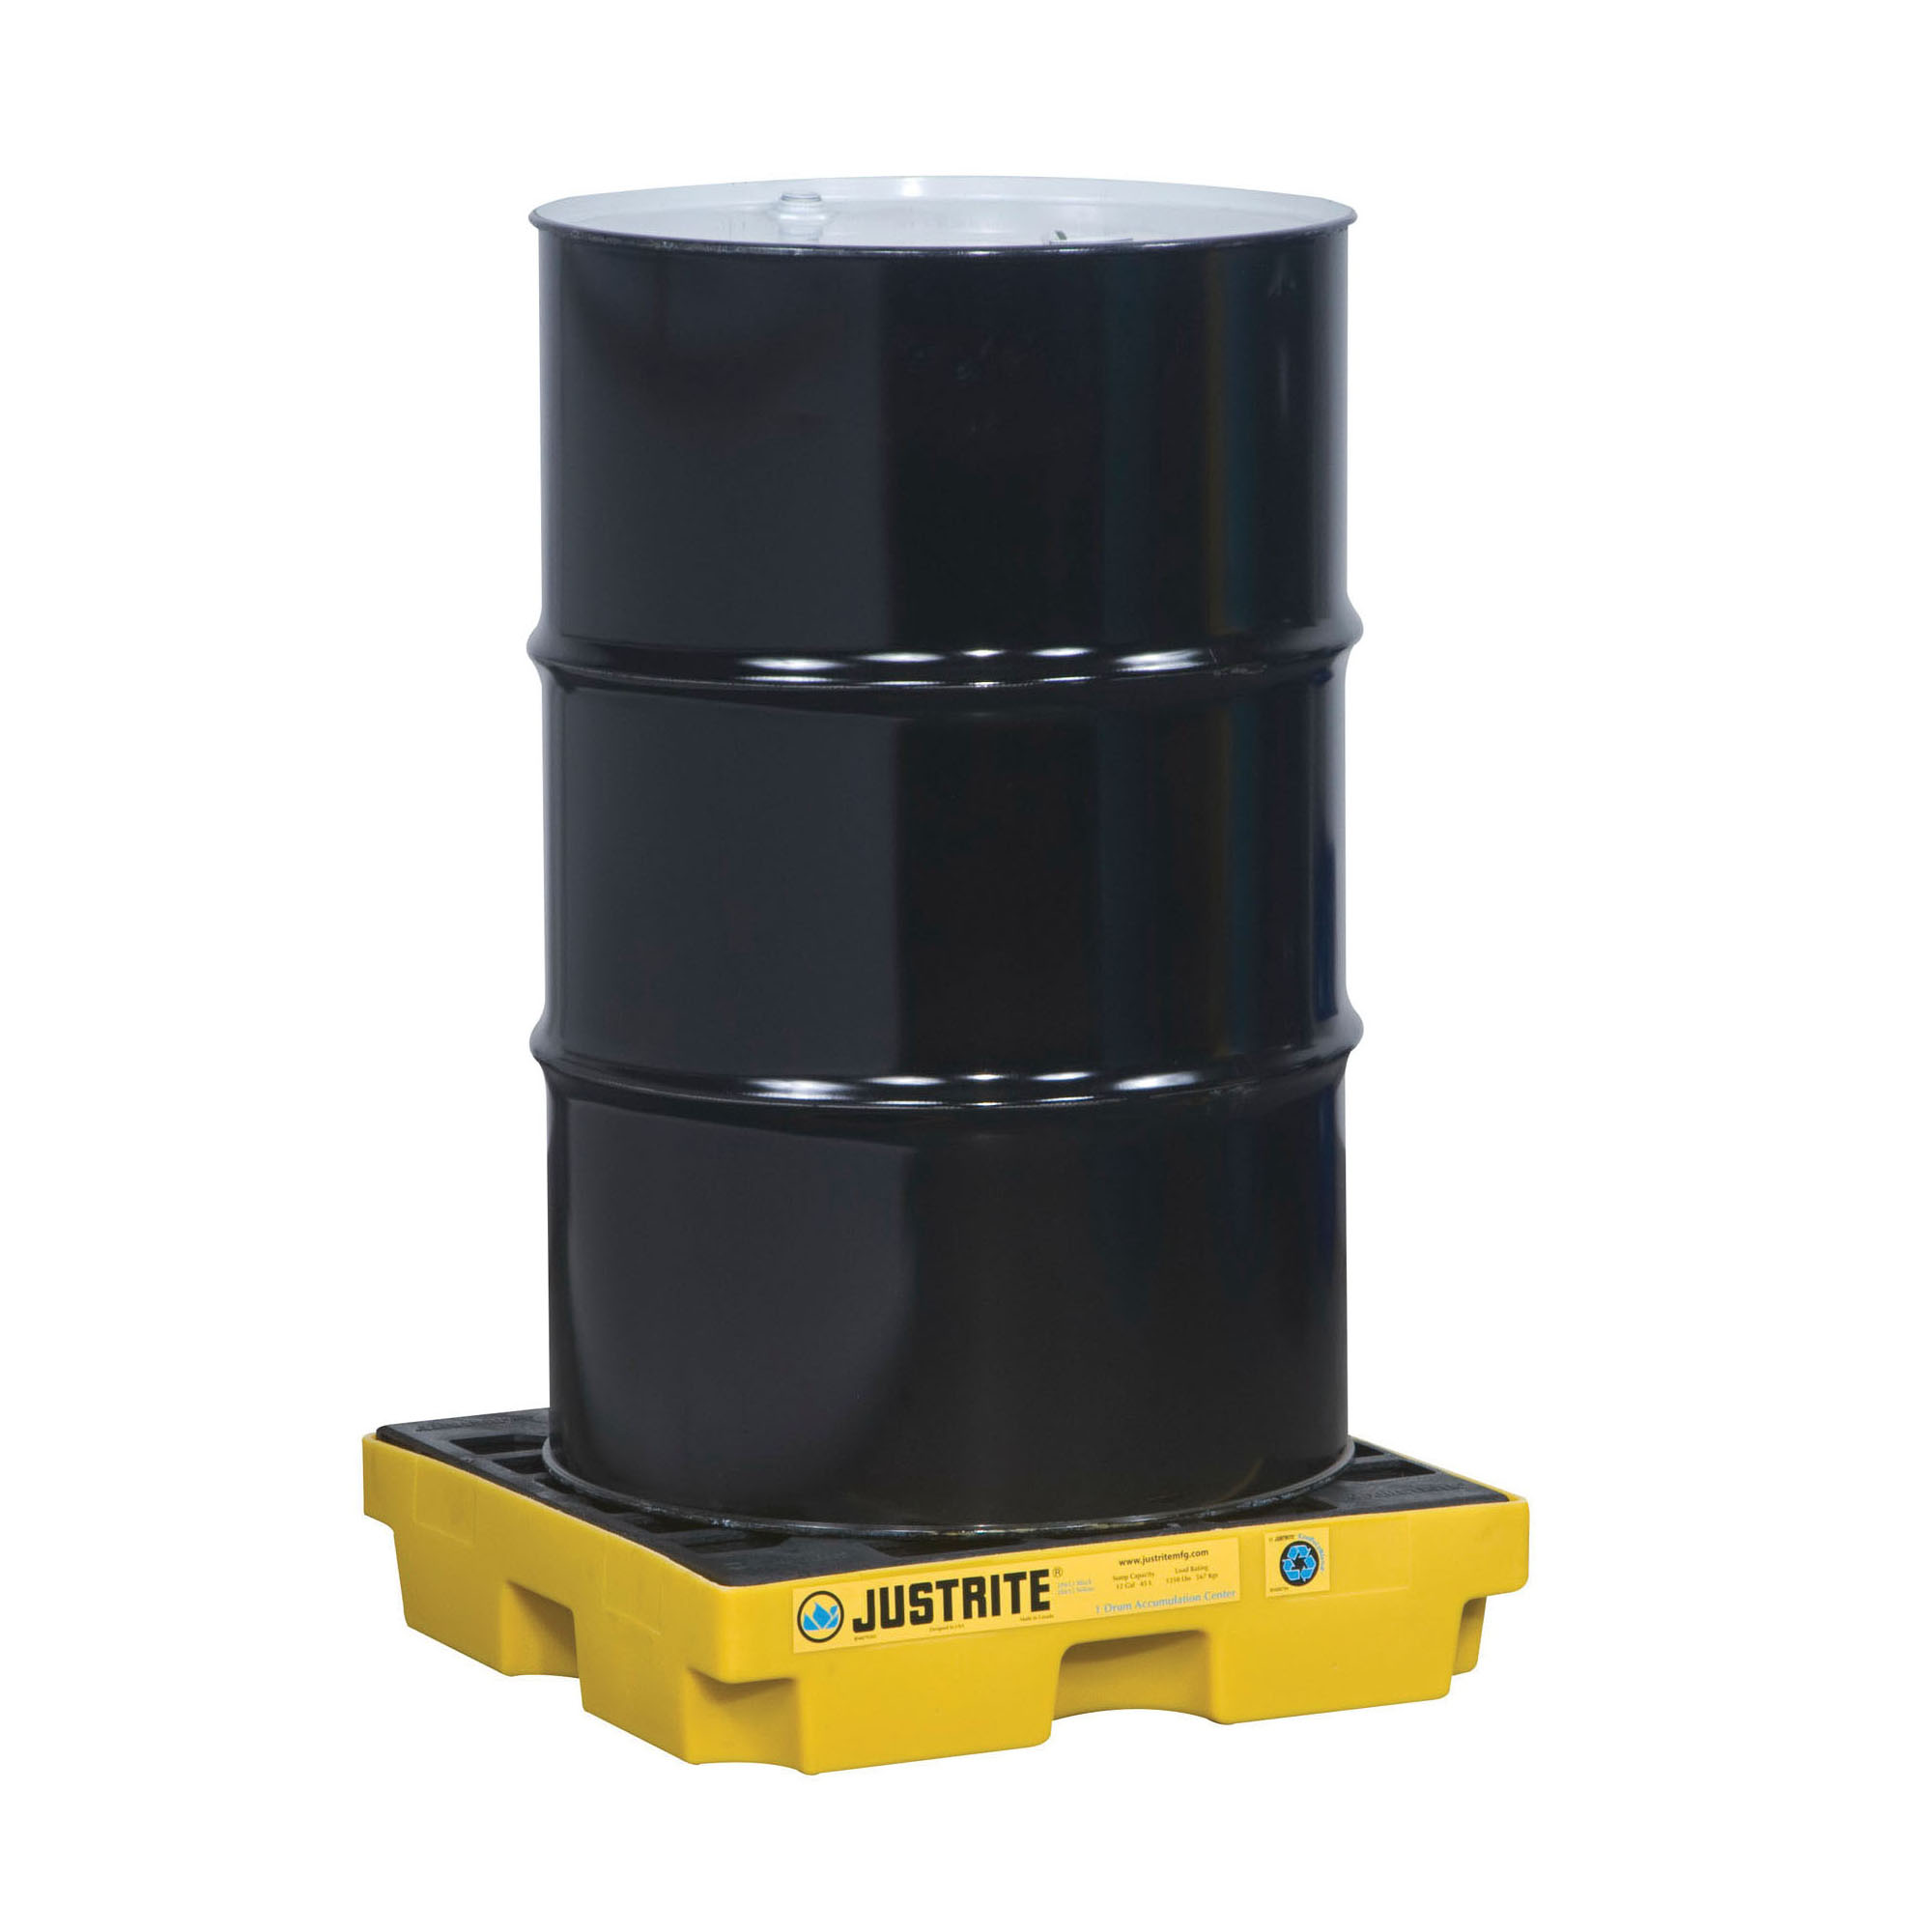 Justrite® 28652 EcoPolyBlend™ Accumulation Center, 1 Drums, 12 gal Spill, 1250 lb Load, 45% Recycled Polyethylene